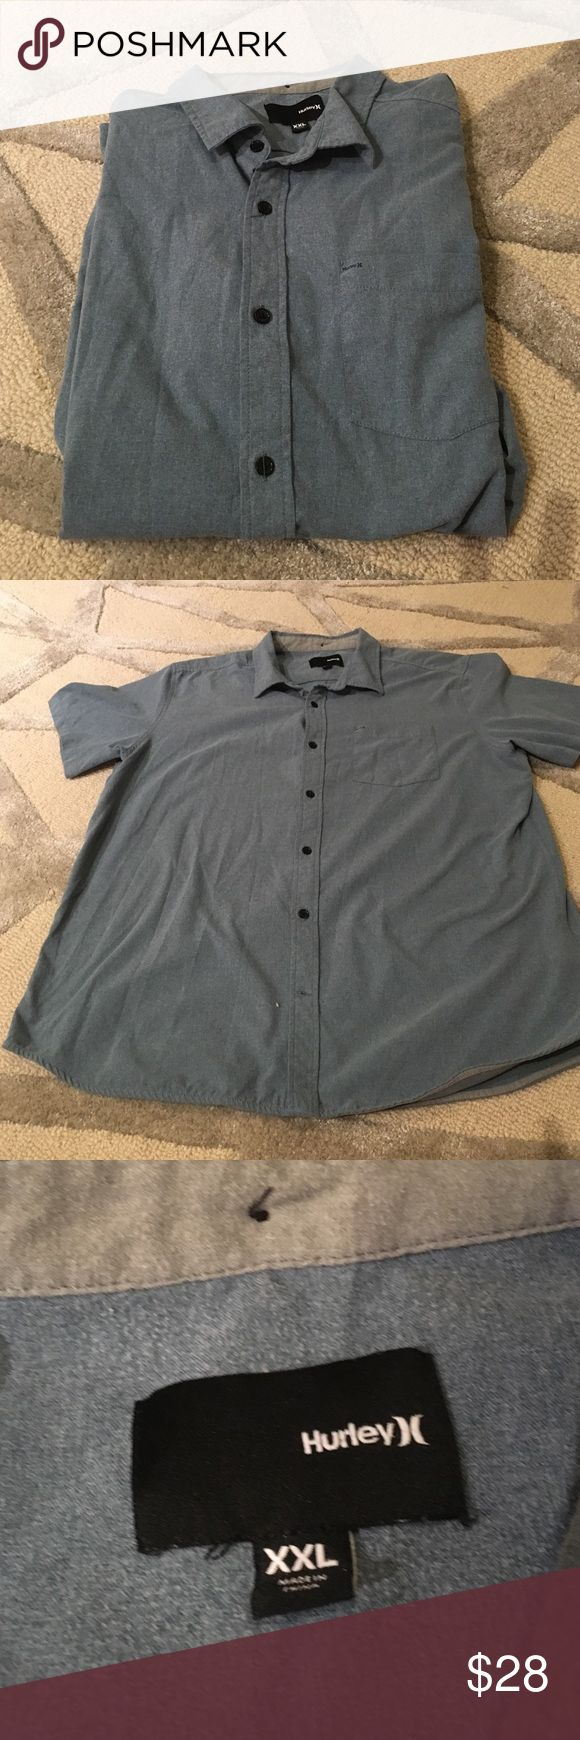 Hurley Men's Short Sleeved Button Down Shirt Hurley Men's Short Sleeved Button Down Shirt with Nike Dri Fit Technology to keep things cool and dry. Casual shirt with logo on front pocket. Please ask any questions. Open to offers. No trades. Hurley Shirts Casual Button Down Shirts